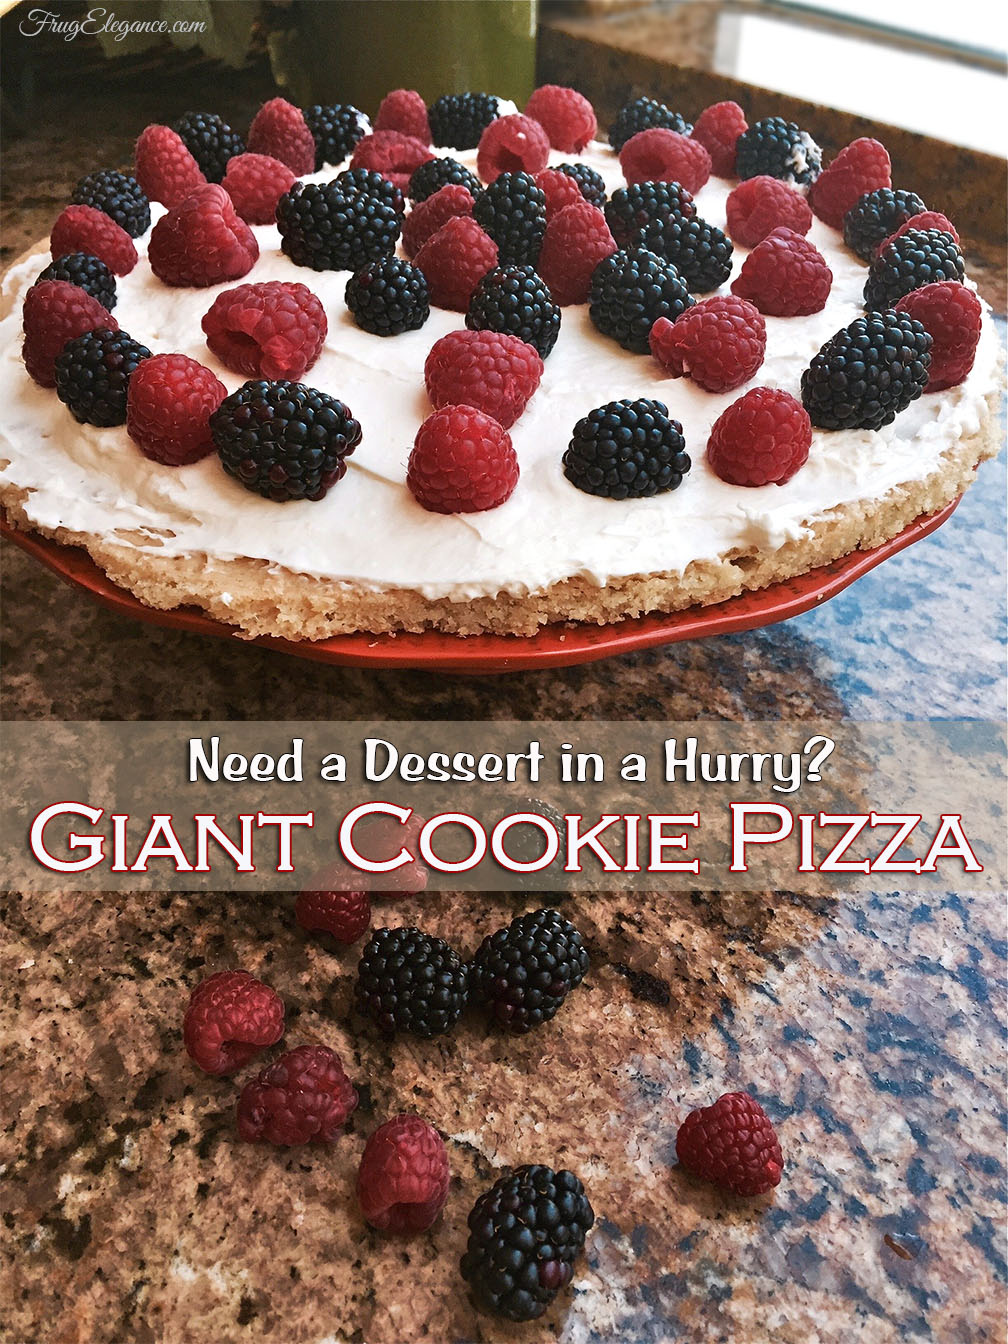 Giant Cookie Pizza A Quick Amp Easy Dessert Frugelegance